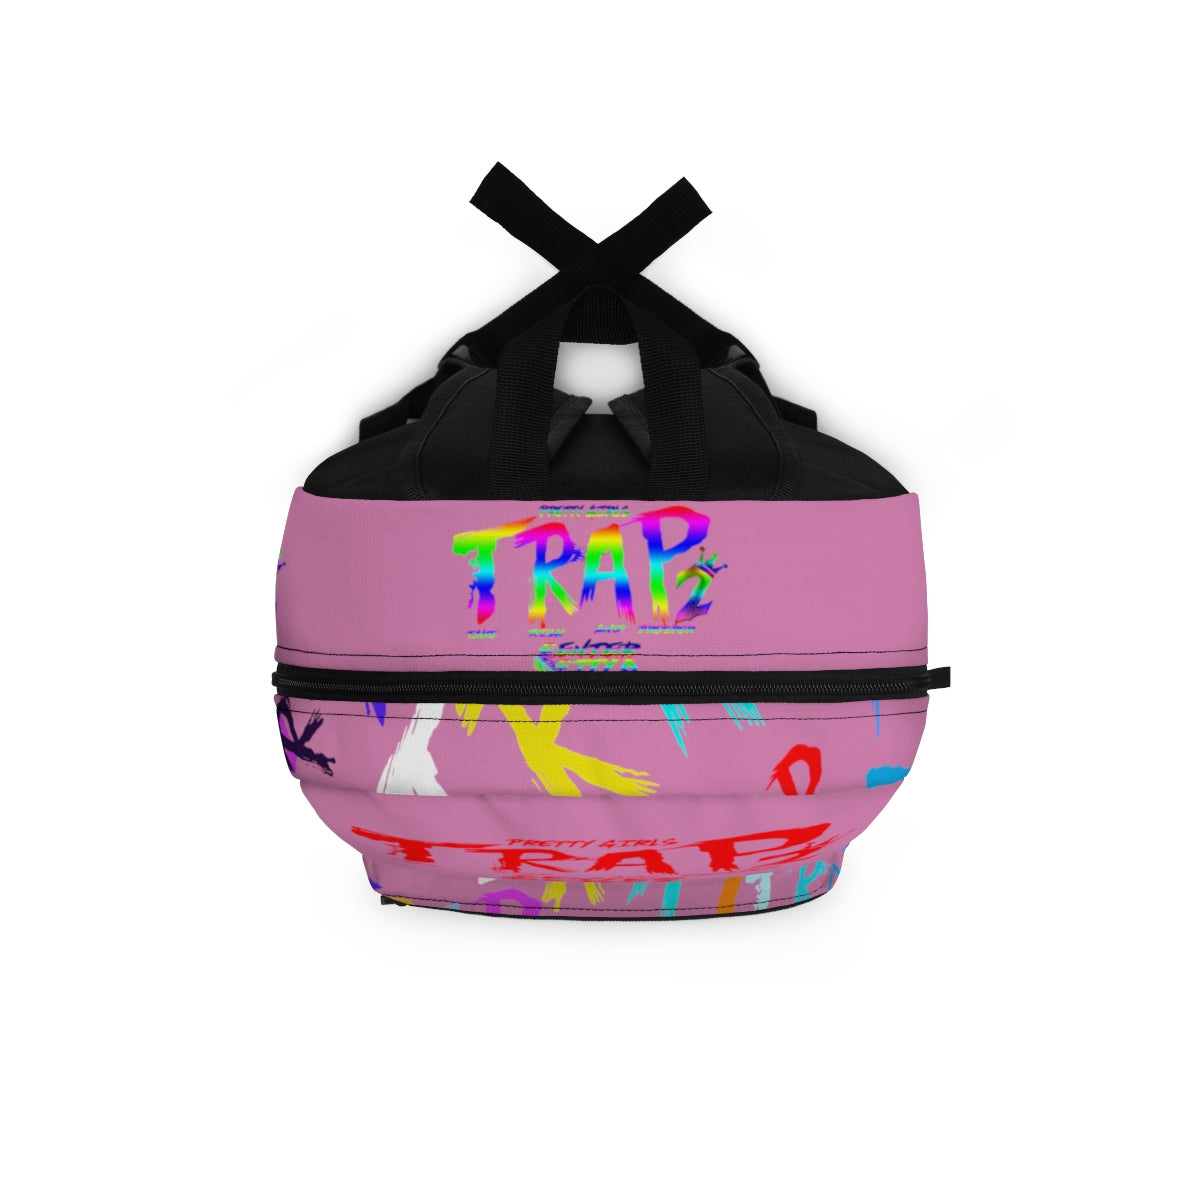 Pink Pretty Girls Trap 2 Backpack (Made in USA)